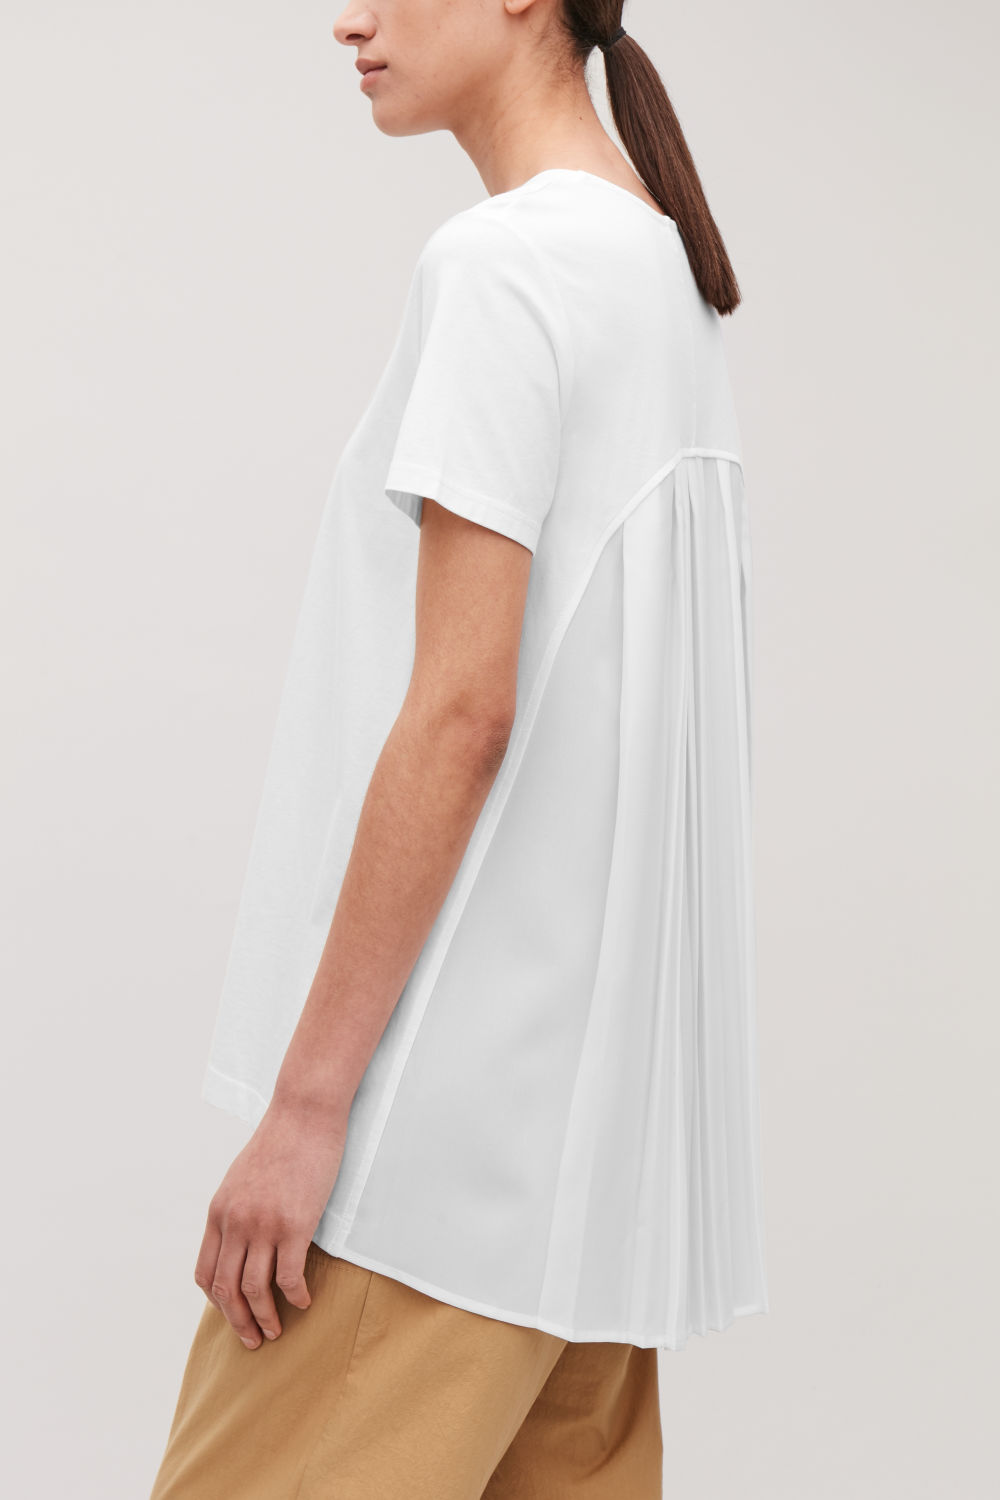 WOVEN-BACK PLEATED T-SHIRT ... 4703f1a0f